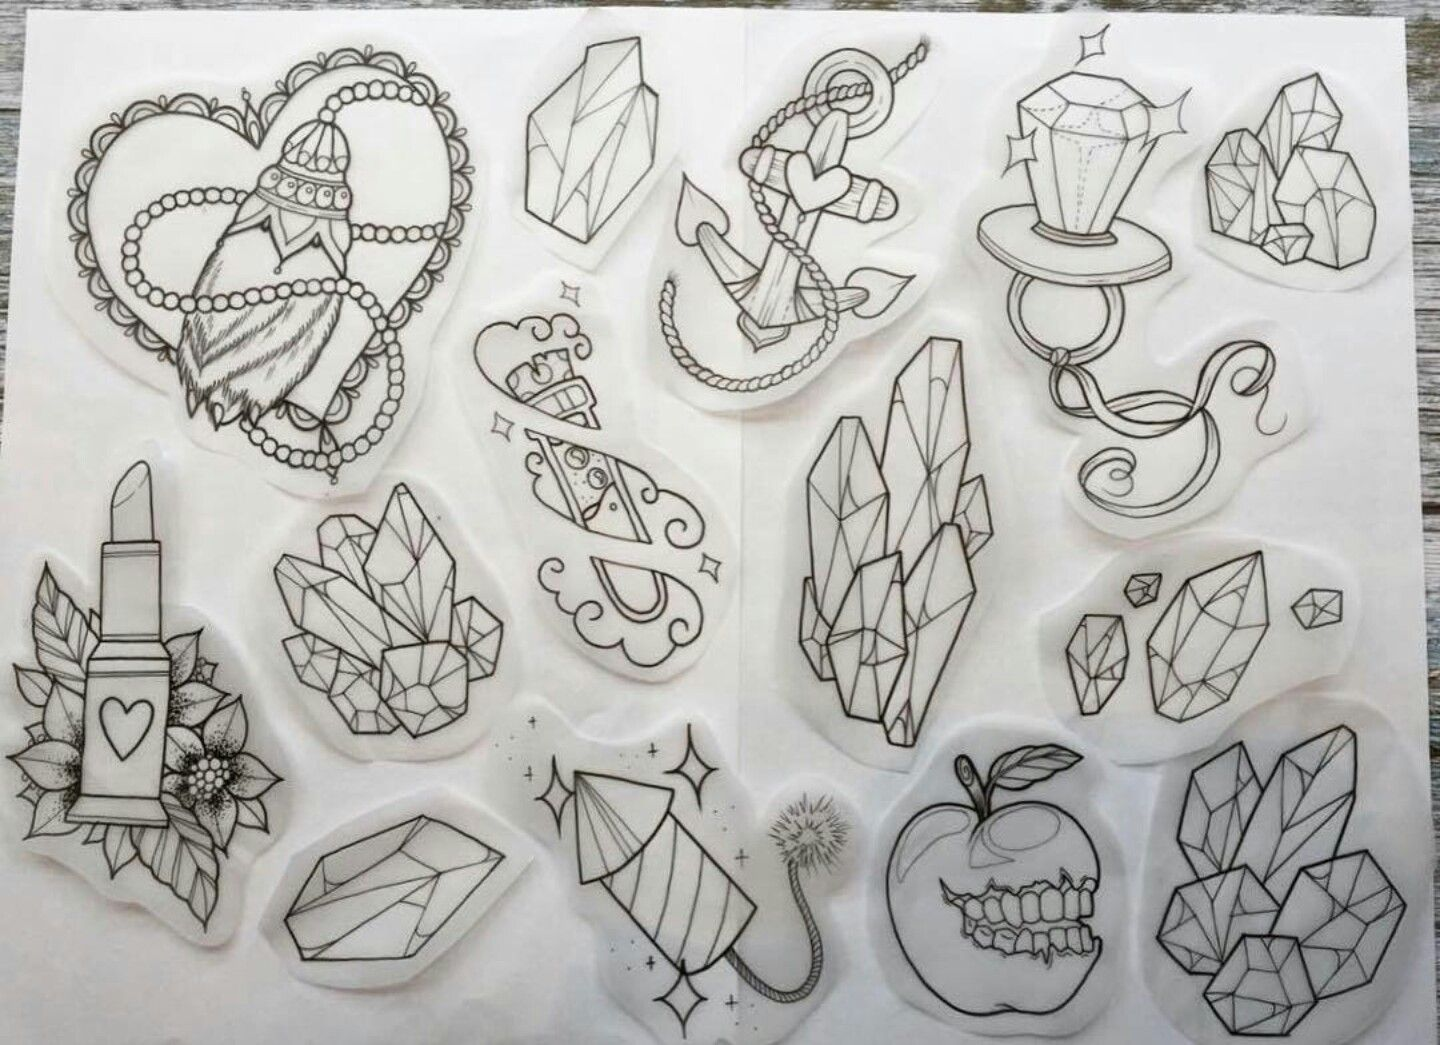 Victorian girly tattoo flash | Girly tattoos, Victorian ...  |Cool Drawings Flash Girly